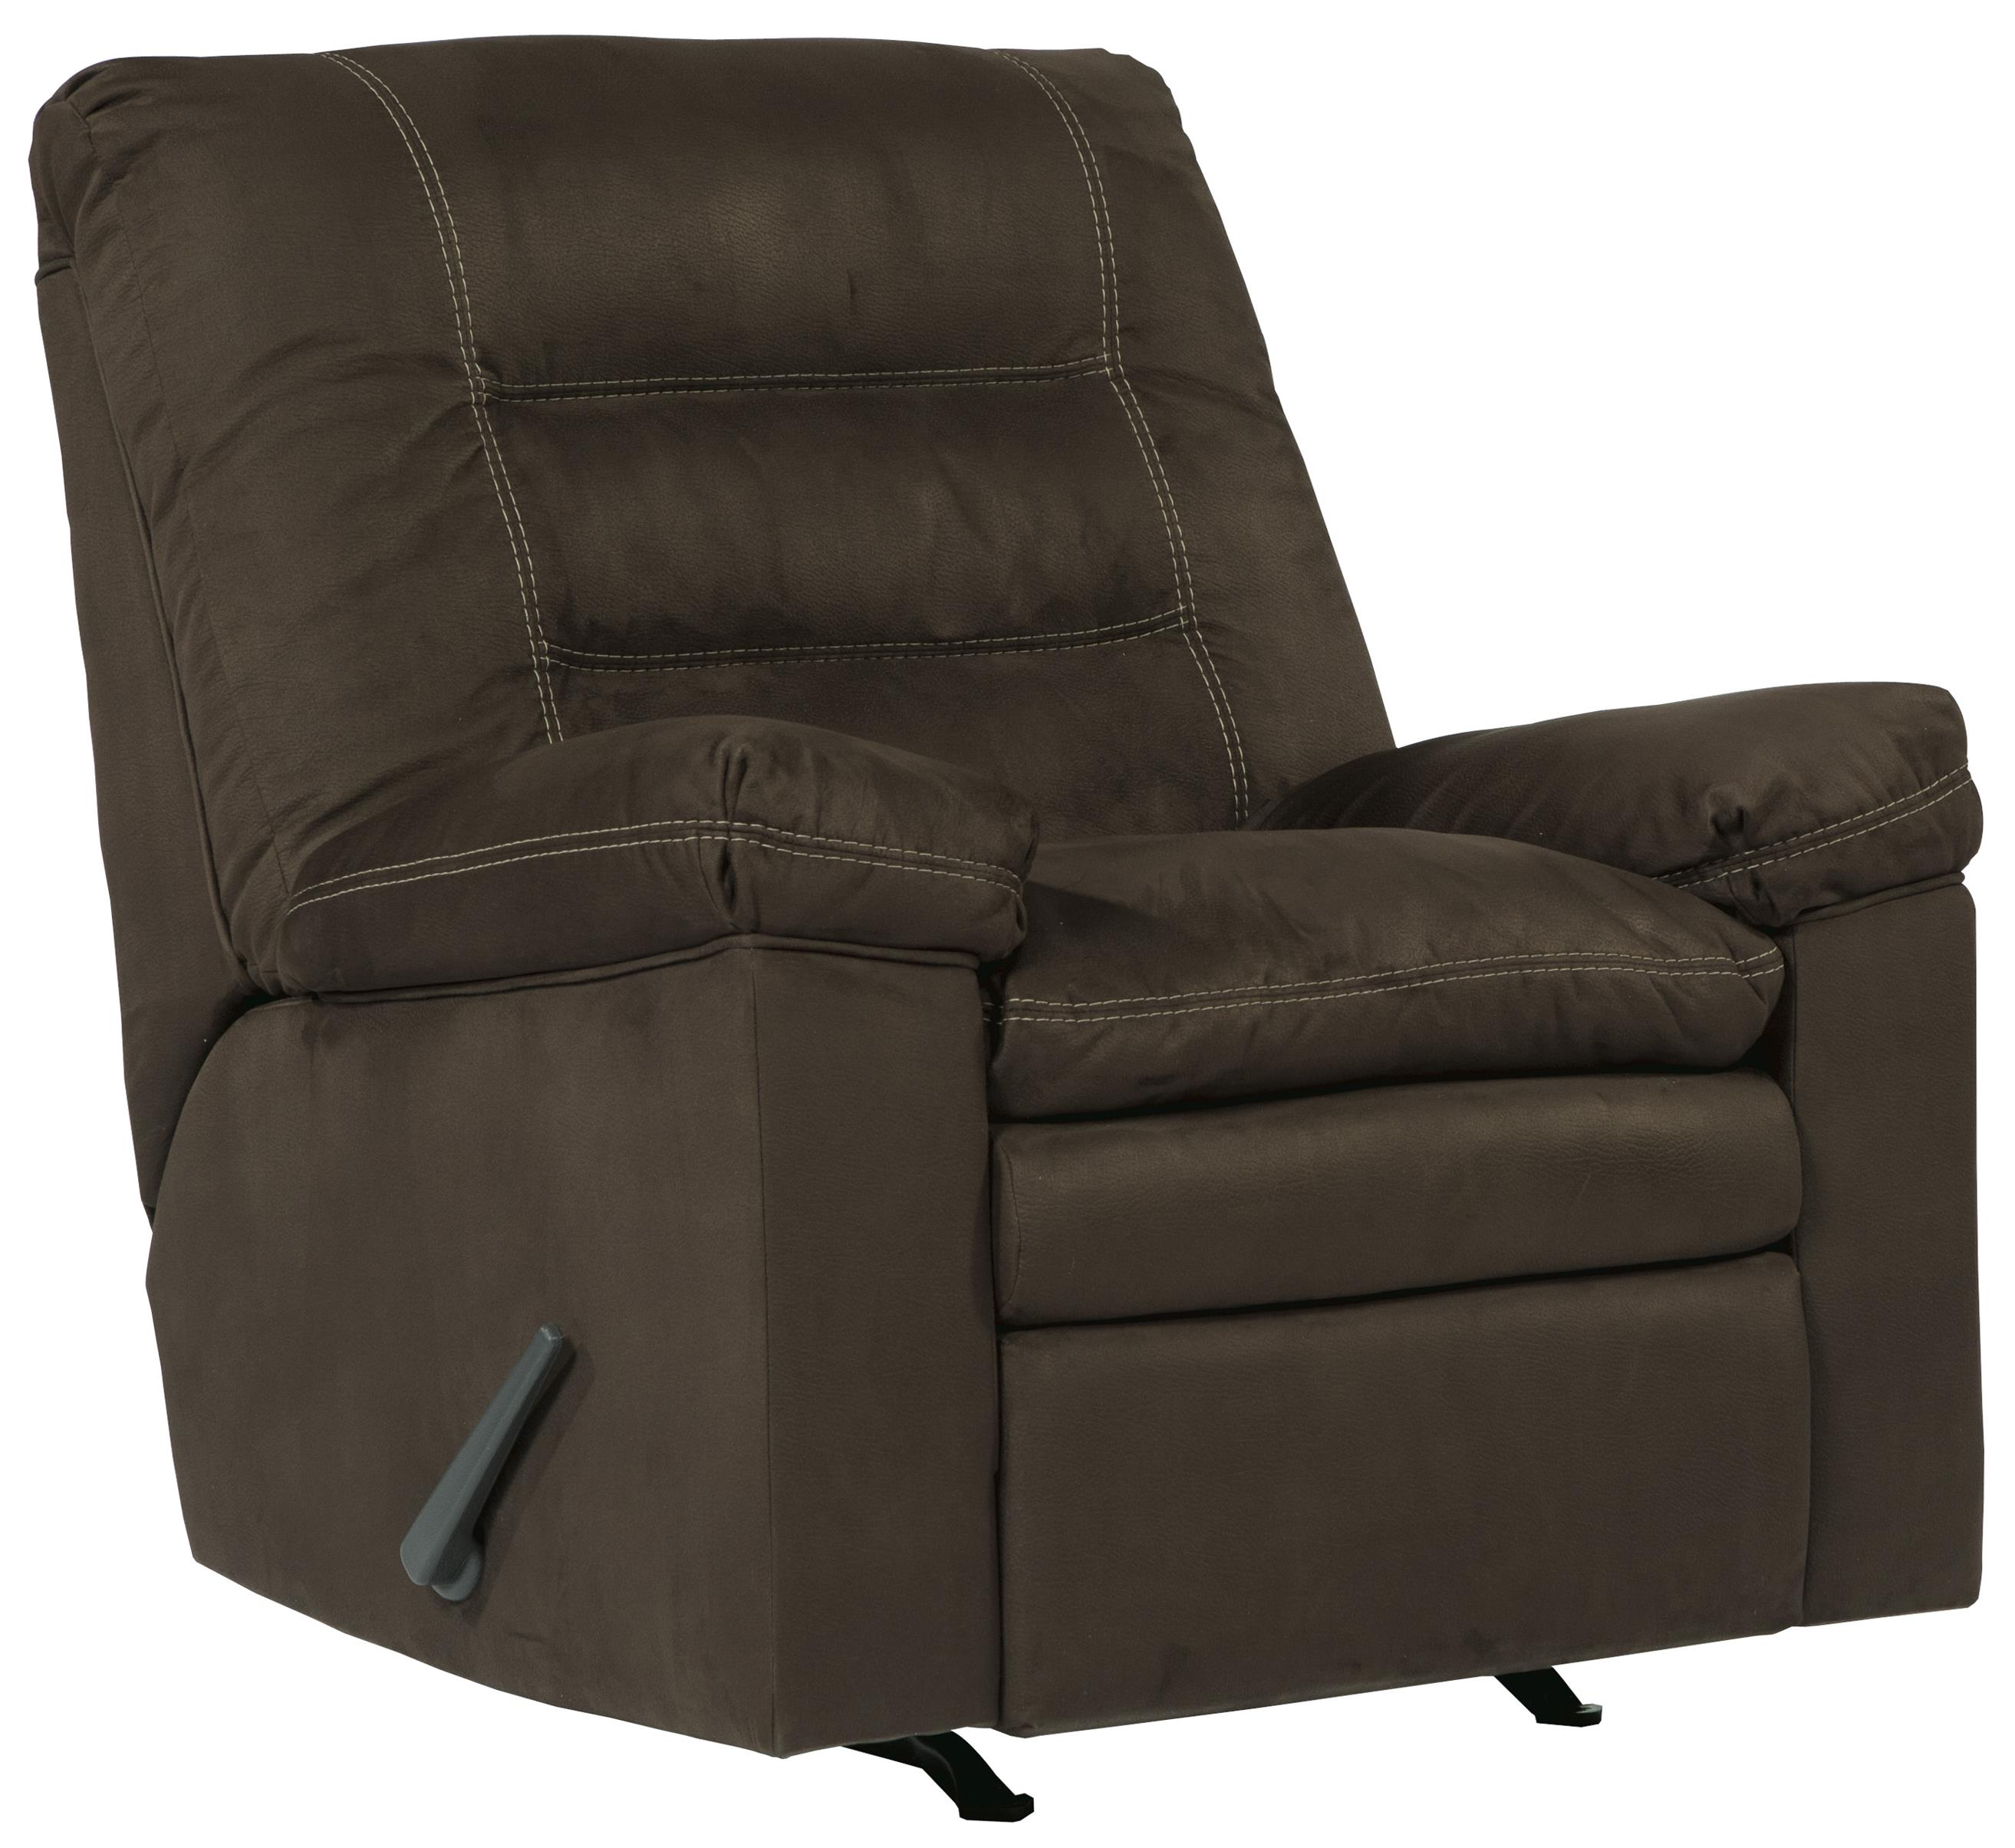 Benchcraft Talut Rocker Recliner - Item Number: 2990025